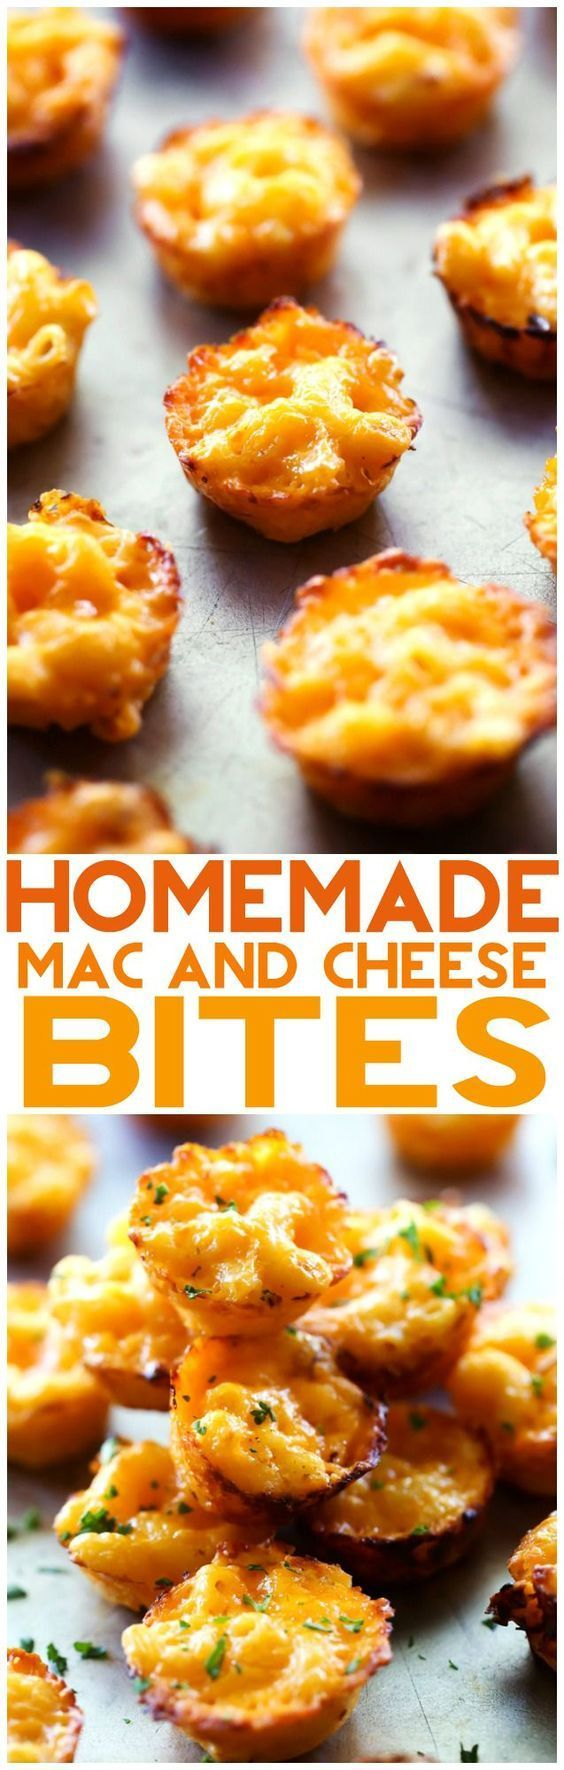 Homemade Mac And Cheese Bites Potluck Finger FoodsSimple FoodsKids Party